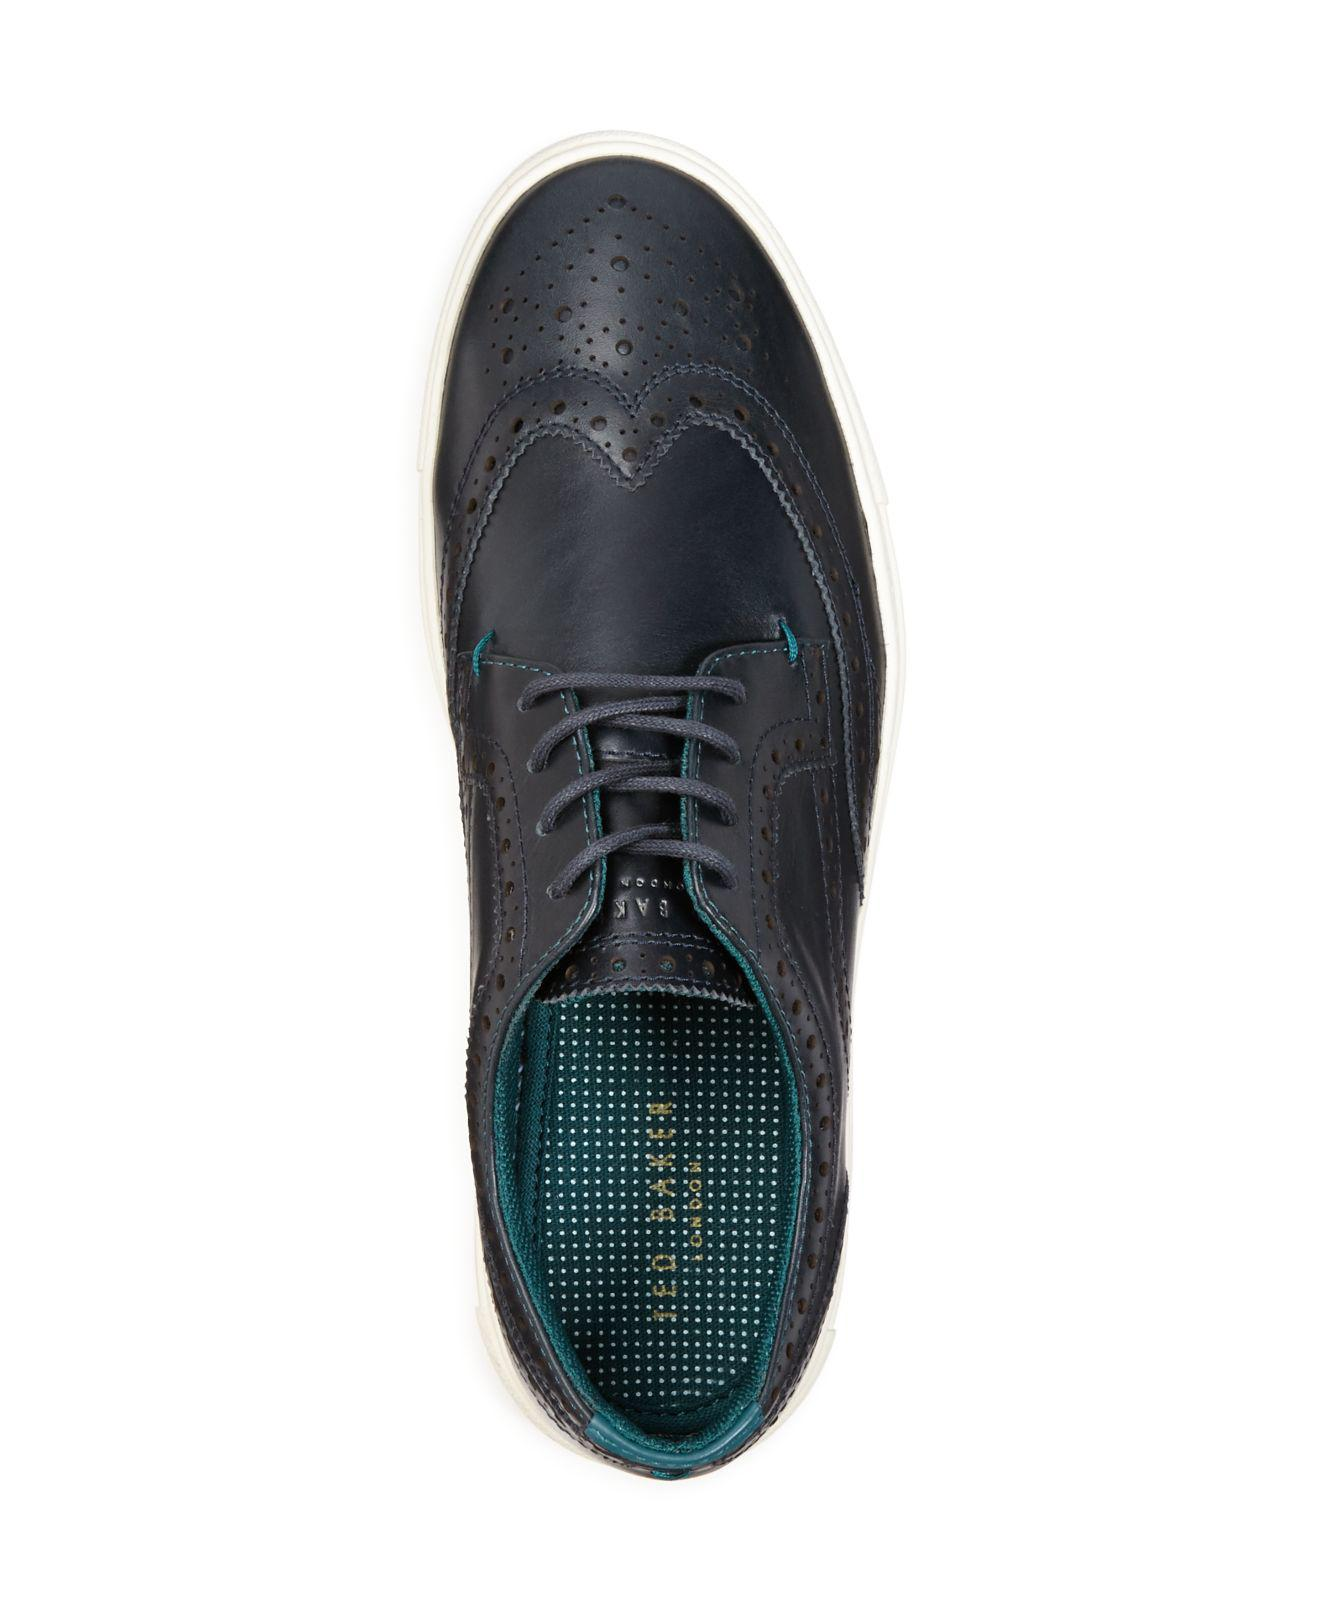 a72f2a9665fcd6 Lyst - Ted Baker Rachet Sneakers in Blue for Men